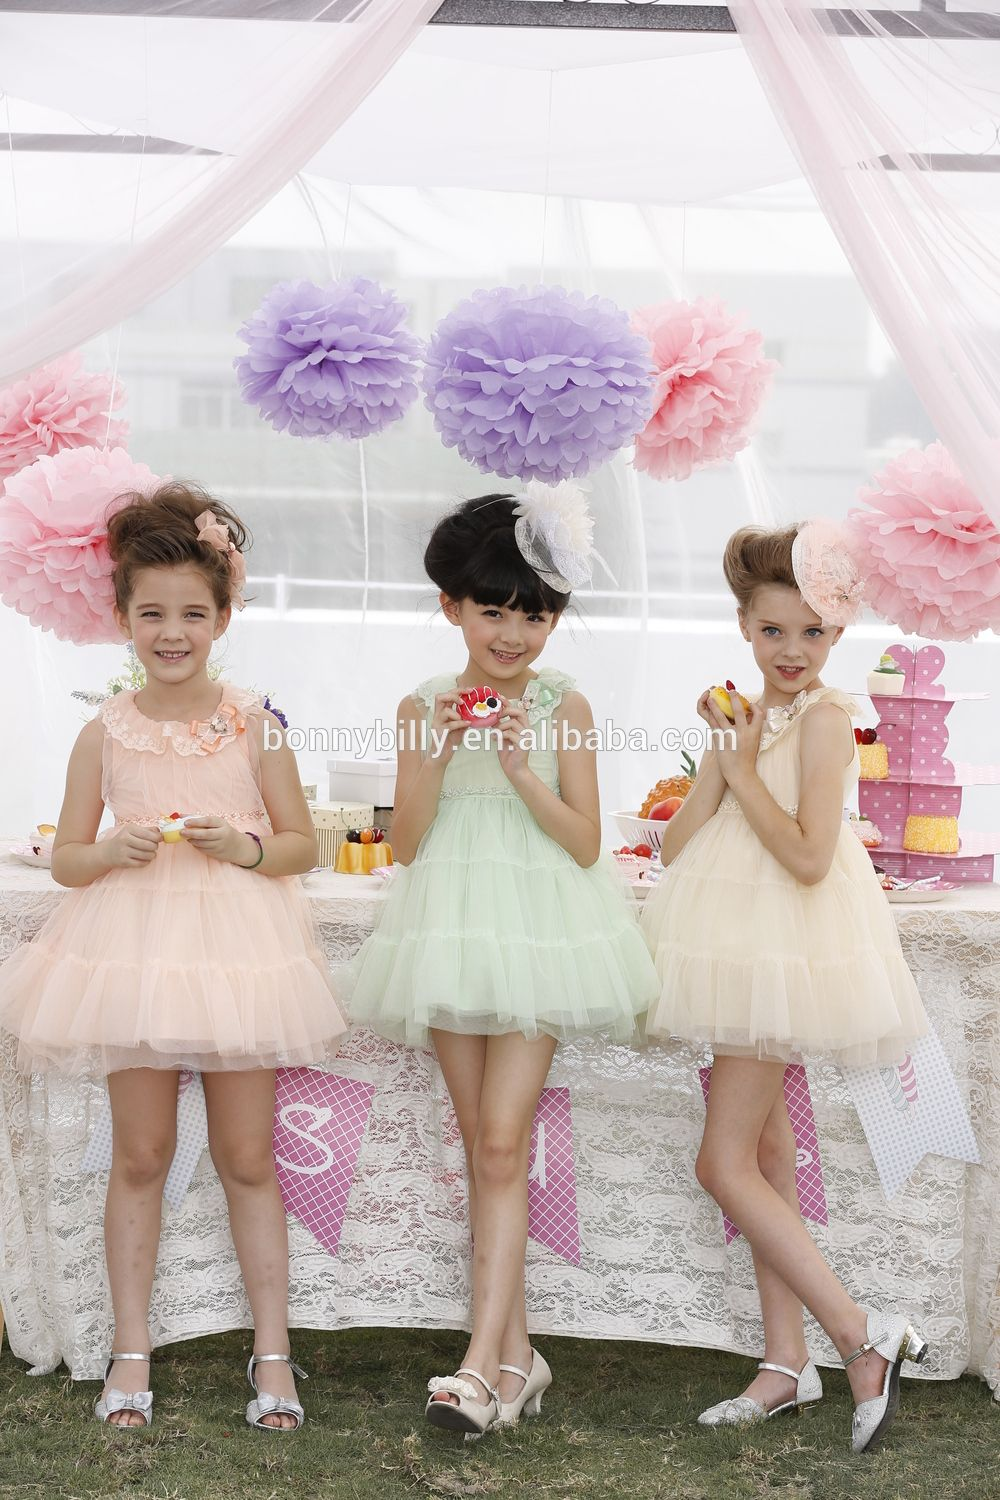 Latest dress designs for kidspuffy party dresses for girls of 7 latest dress designs for kidspuffy party dresses for girls of 7 years old ombrellifo Images